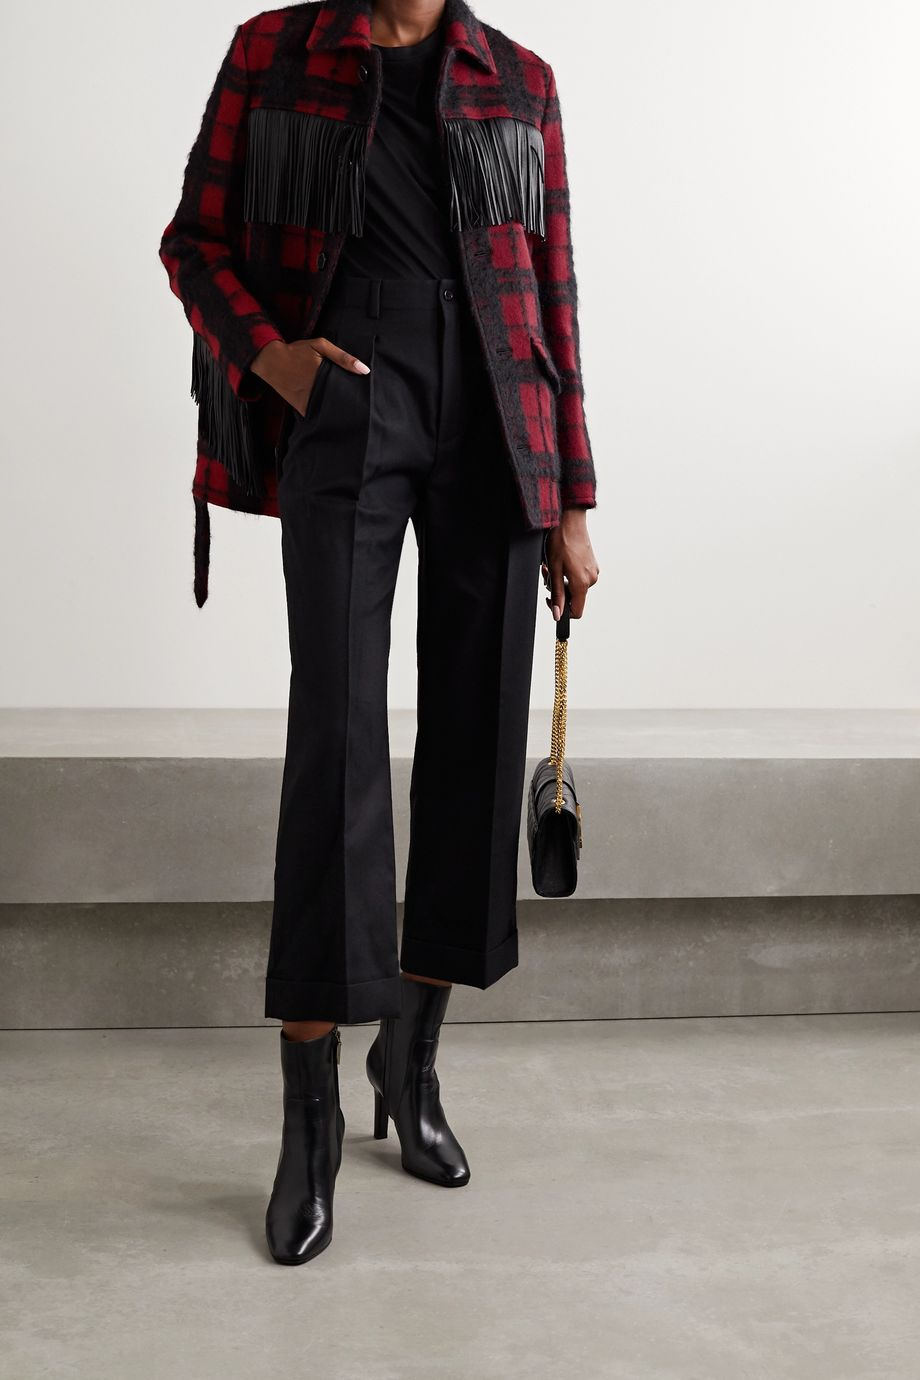 SAINT LAURENT Belted fringed leather-trimmed checked wool-blend jacket